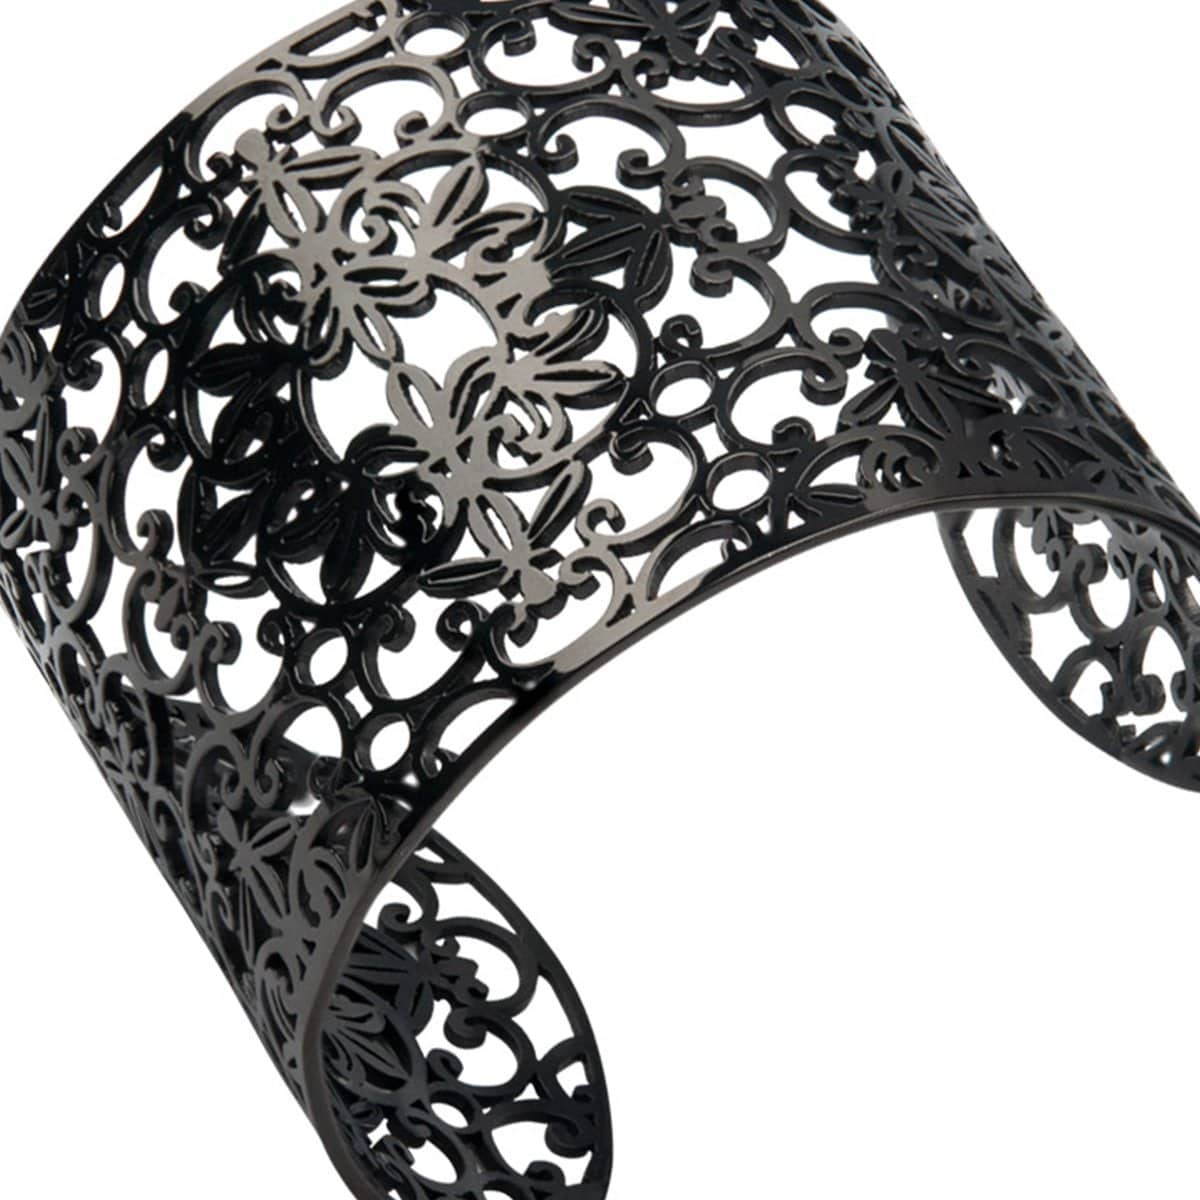 Black Stainless Steel Filigree Floral Design Cuff Bangle